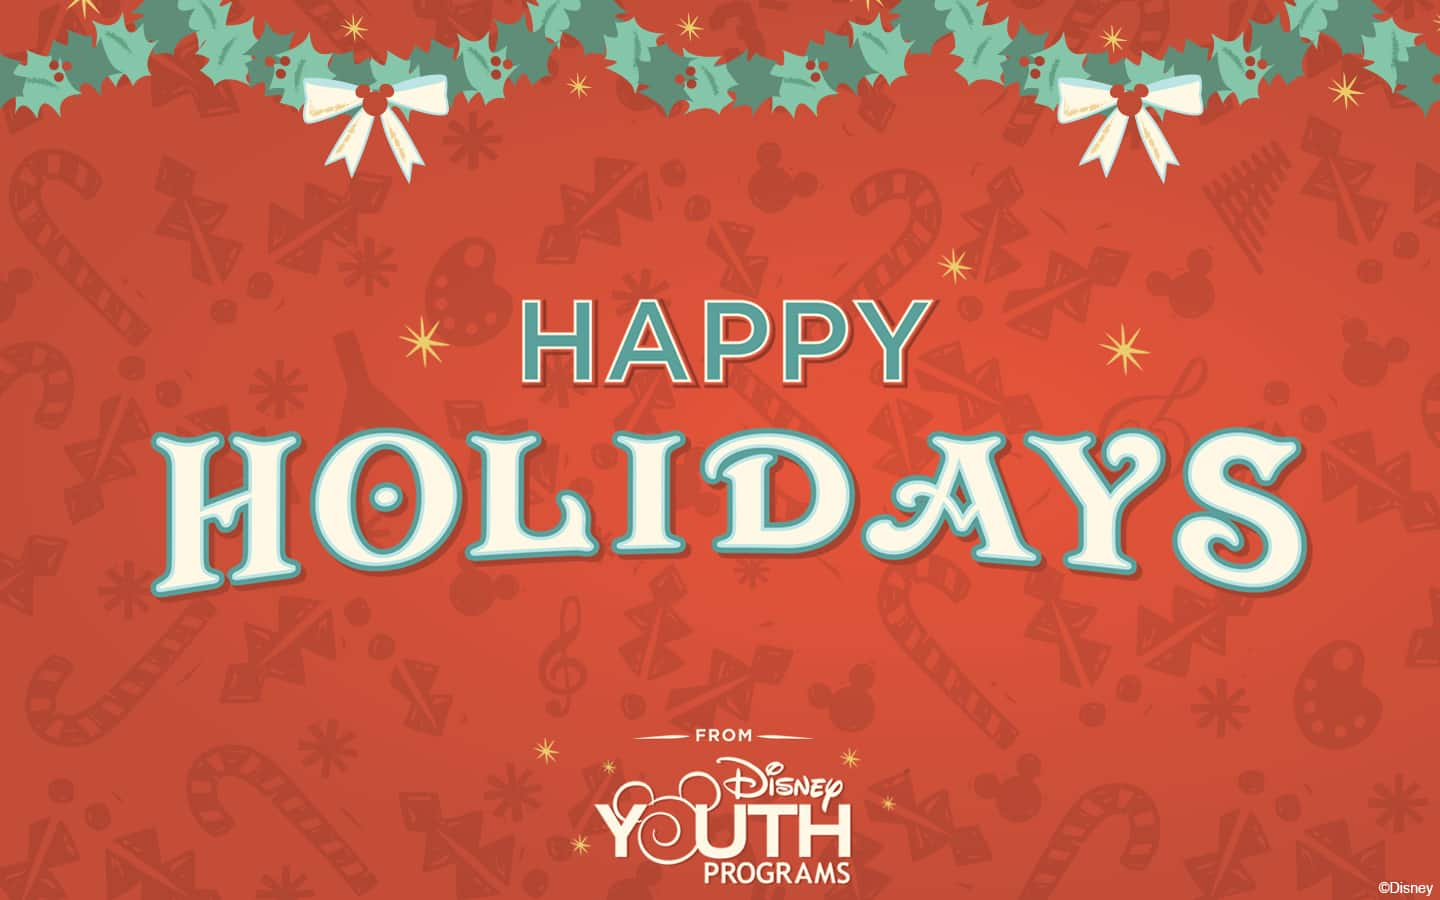 Disney Youth Programs Happy Holidays Wallpaper